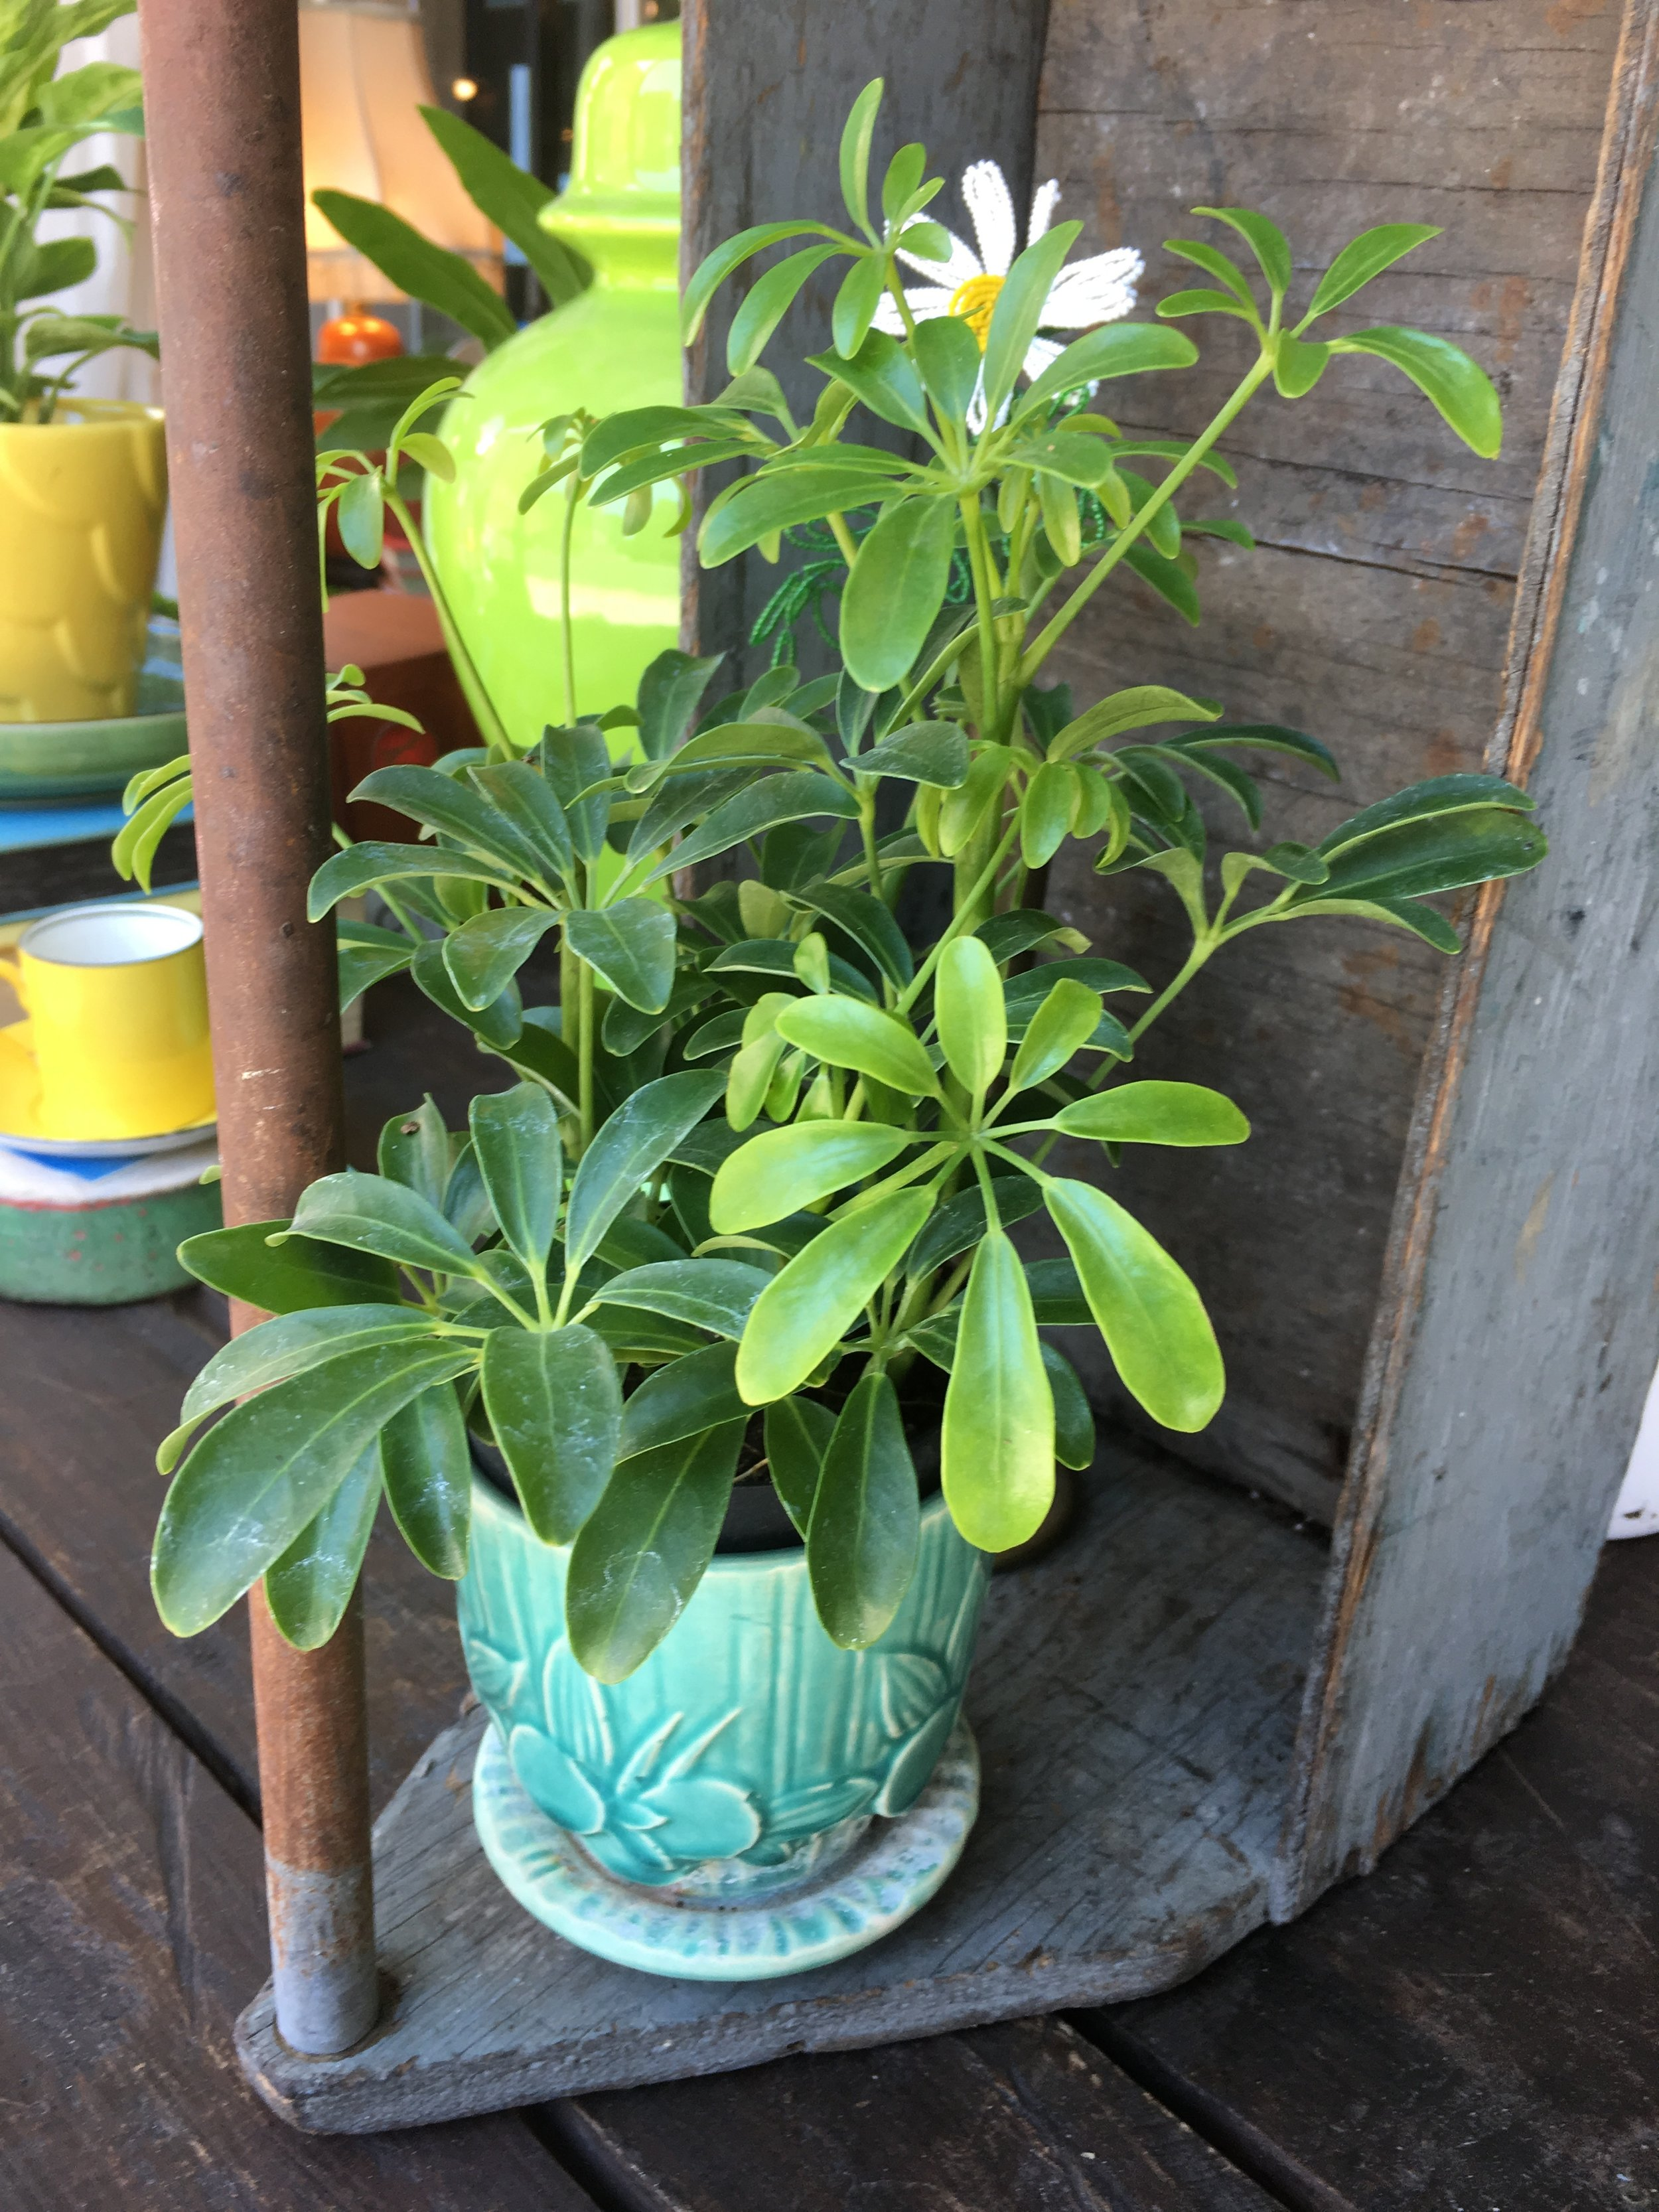 Plants and Pots - Getting ready for back to school. We just brought in tons of house plants in all sizes, shapes and colors. Finally have something to put in the pretty planters we have been collecting.We have succulents, hanging plants, floor plants, citrus trees and more